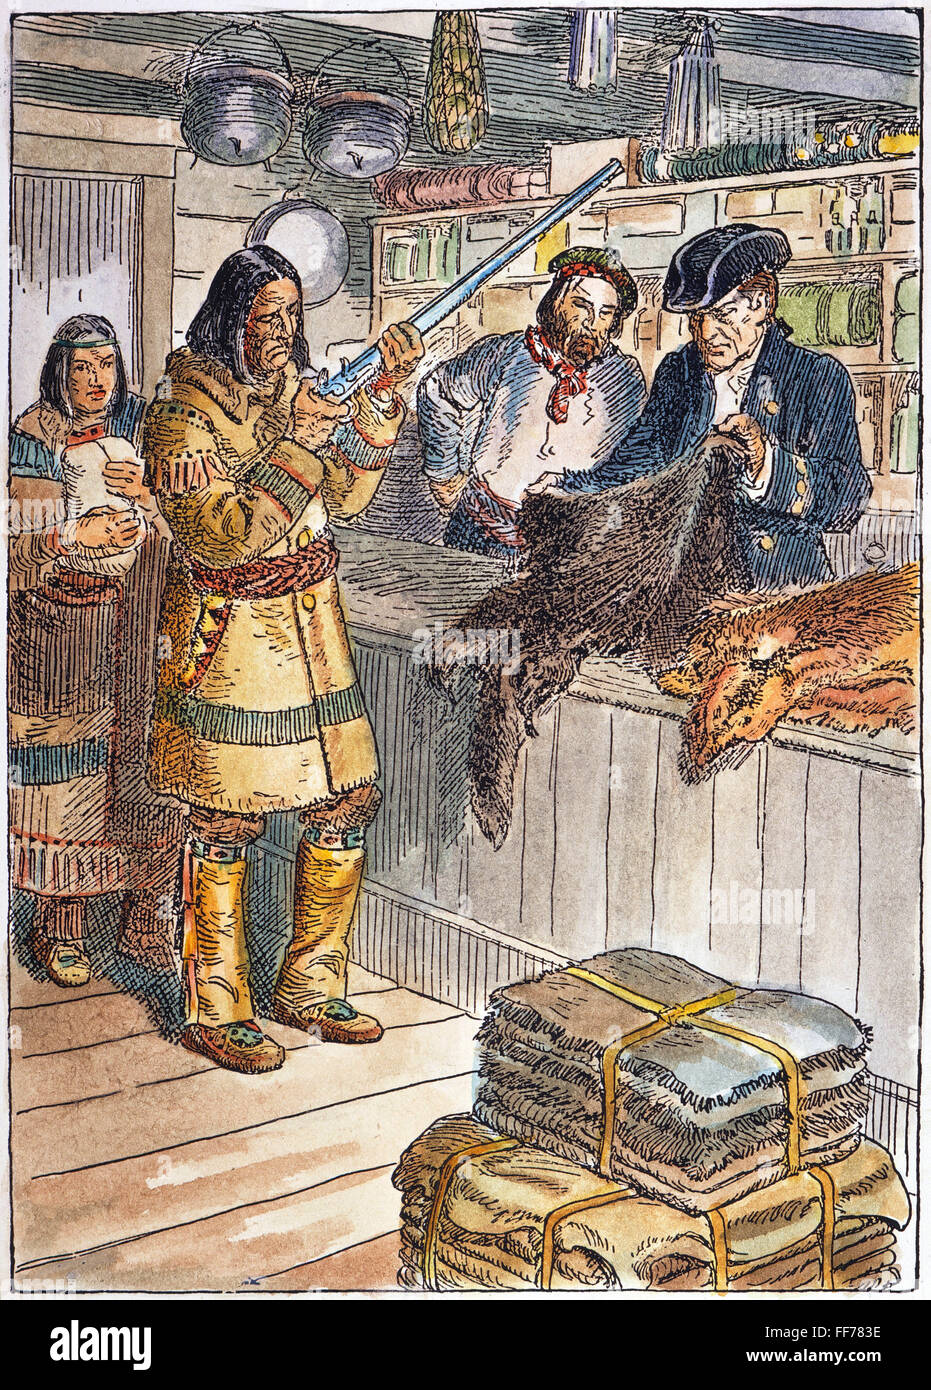 /nA Native American trading fur for guns at a frontier trading post, 1785.  Drawing by C.W. Jefferys.